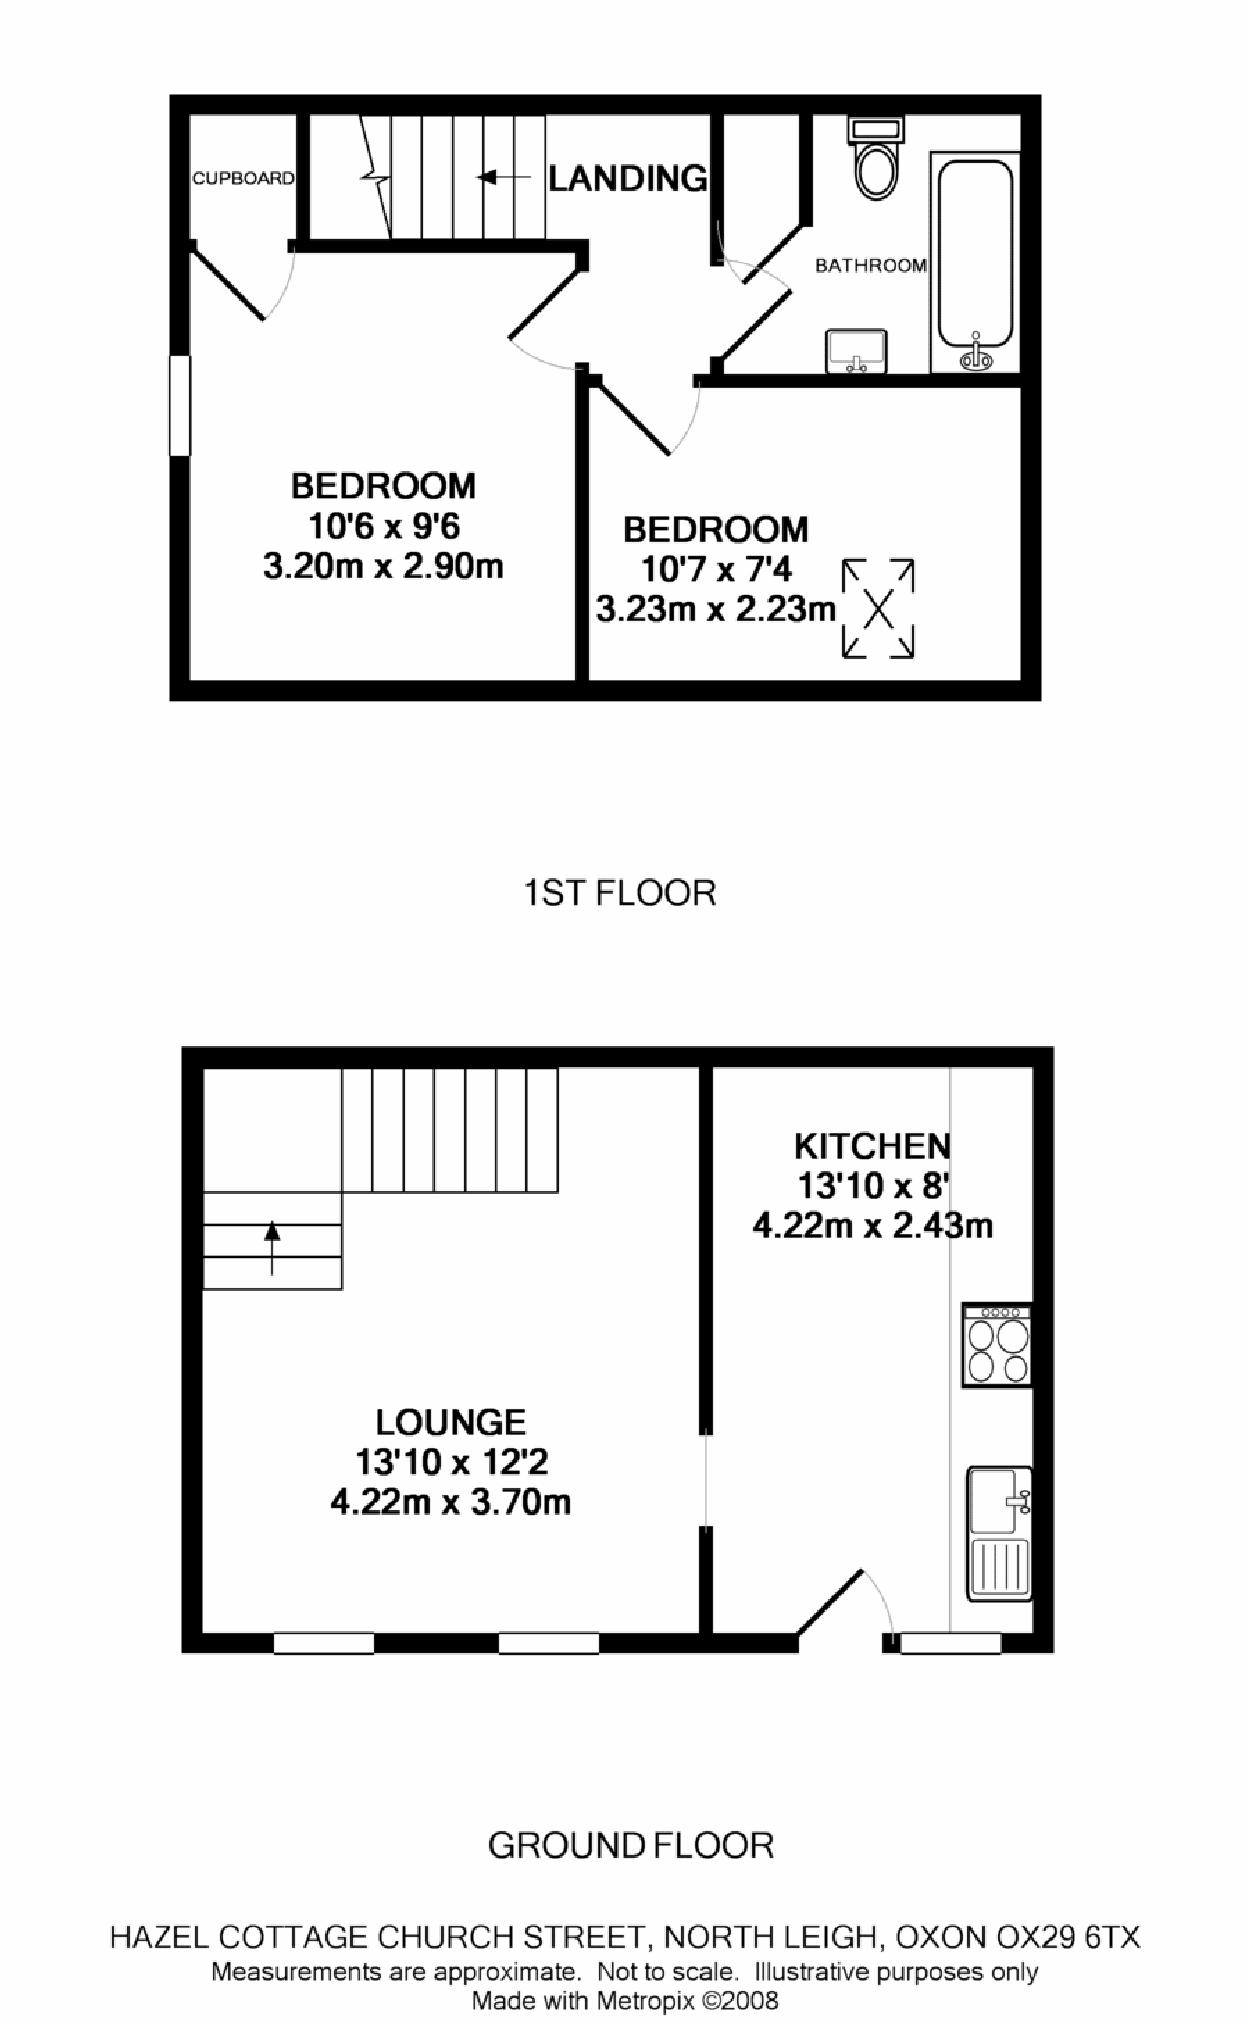 2 bedroom tiny house plans church road leigh ox29 ref 15572 witney 17965